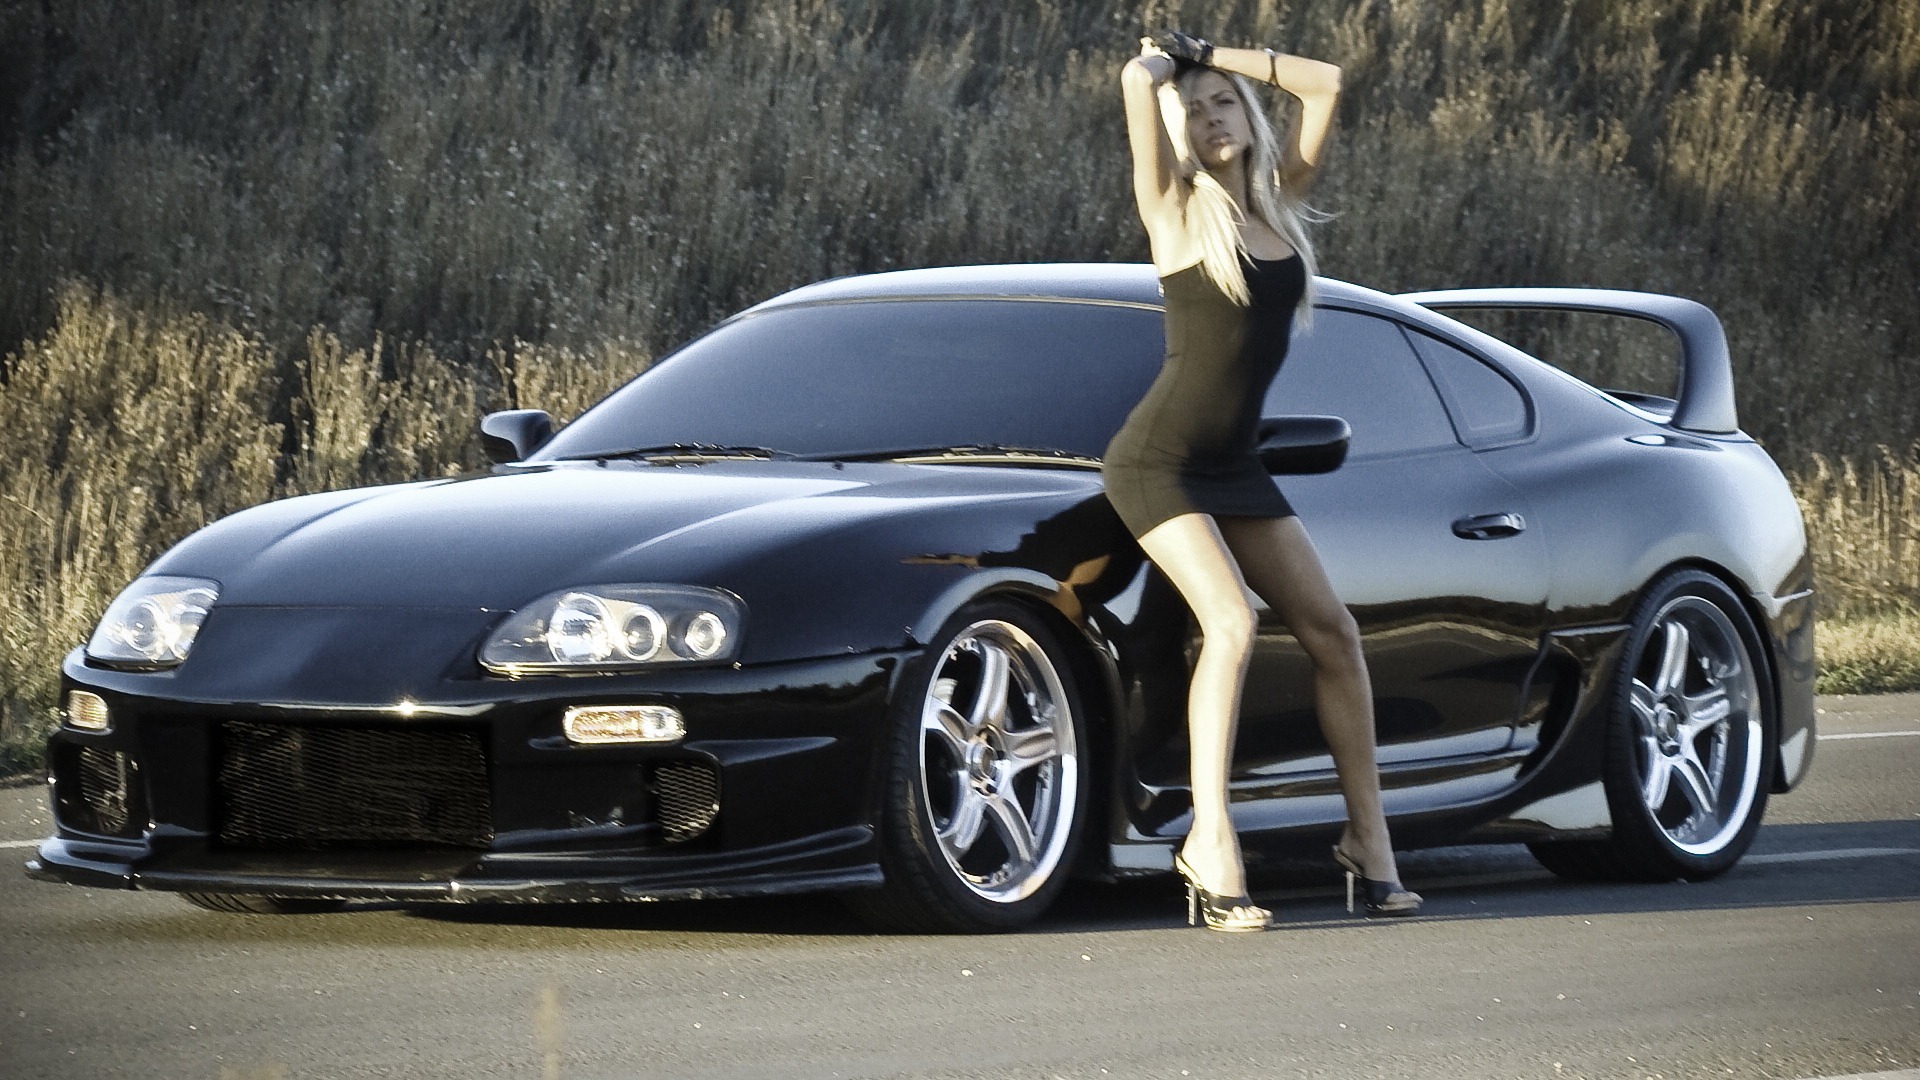 Toyota Supra Wallpapers Images Photos Pictures Backgrounds HD Wallpapers Download free images and photos [musssic.tk]